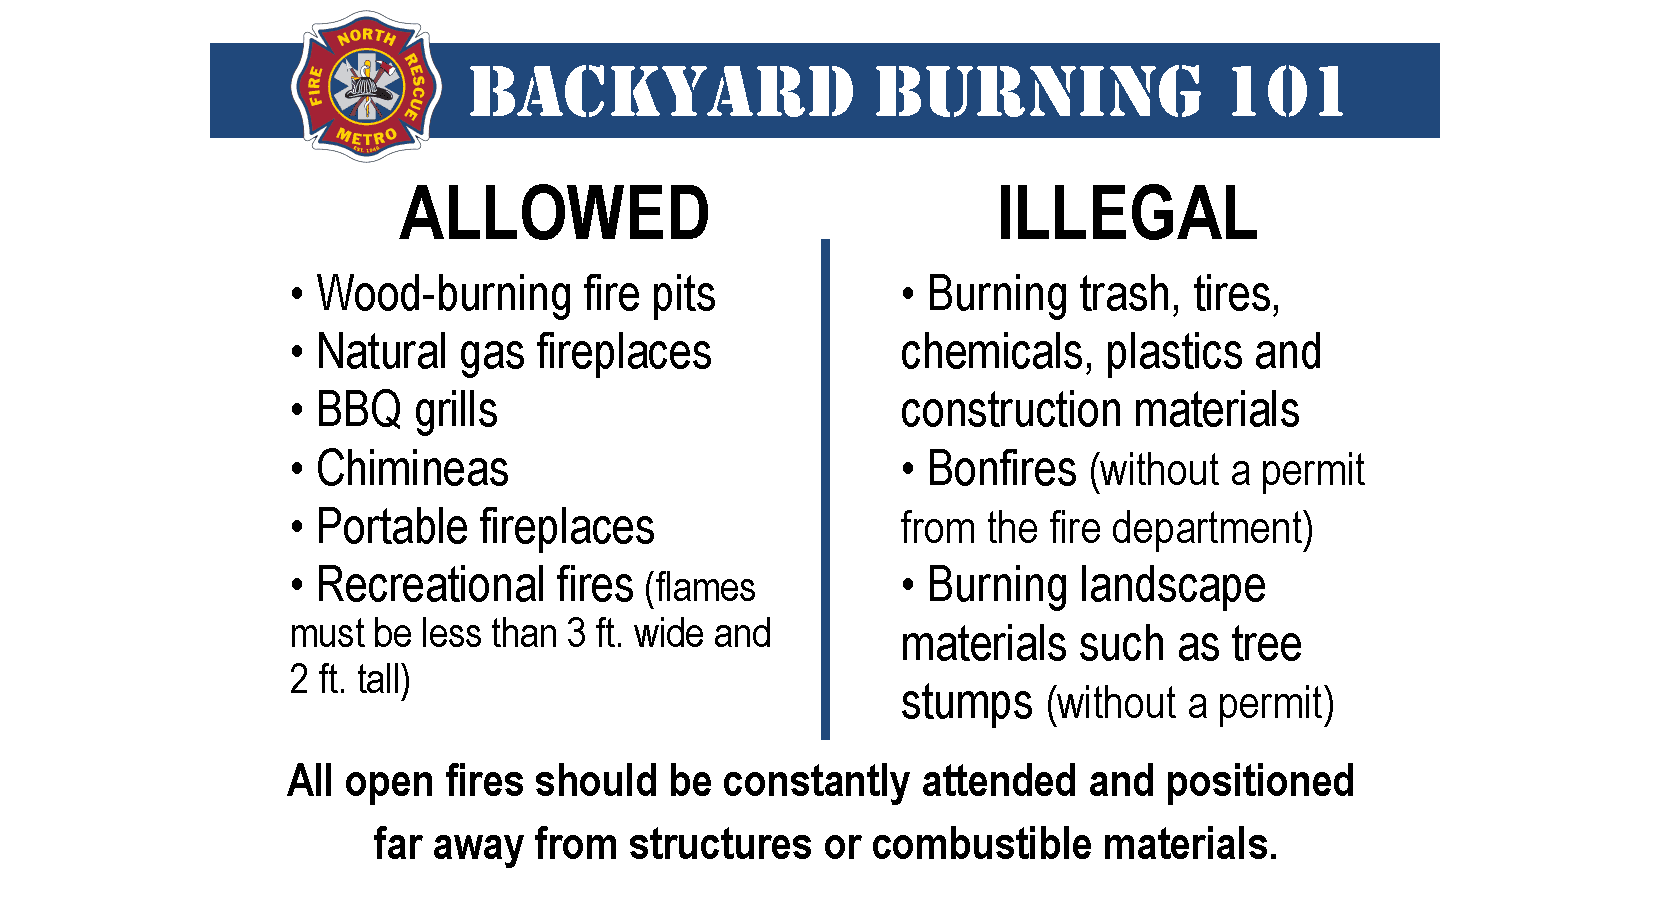 Backyard Burning 101